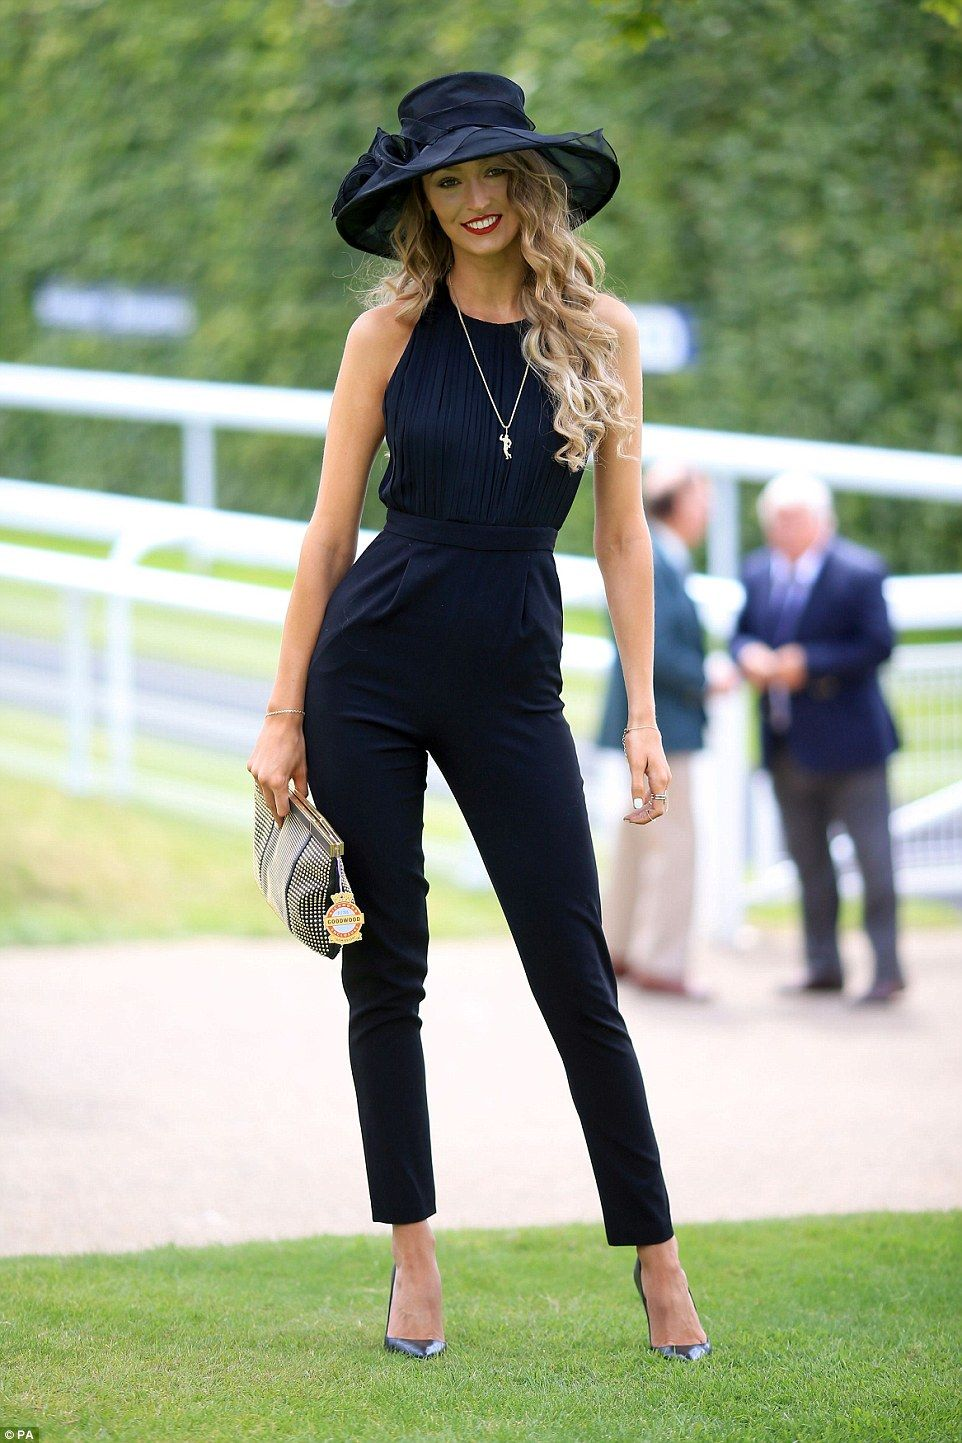 This Young Woman Opted For A Modern Take On The Dress Code With Chic Jumpsuit